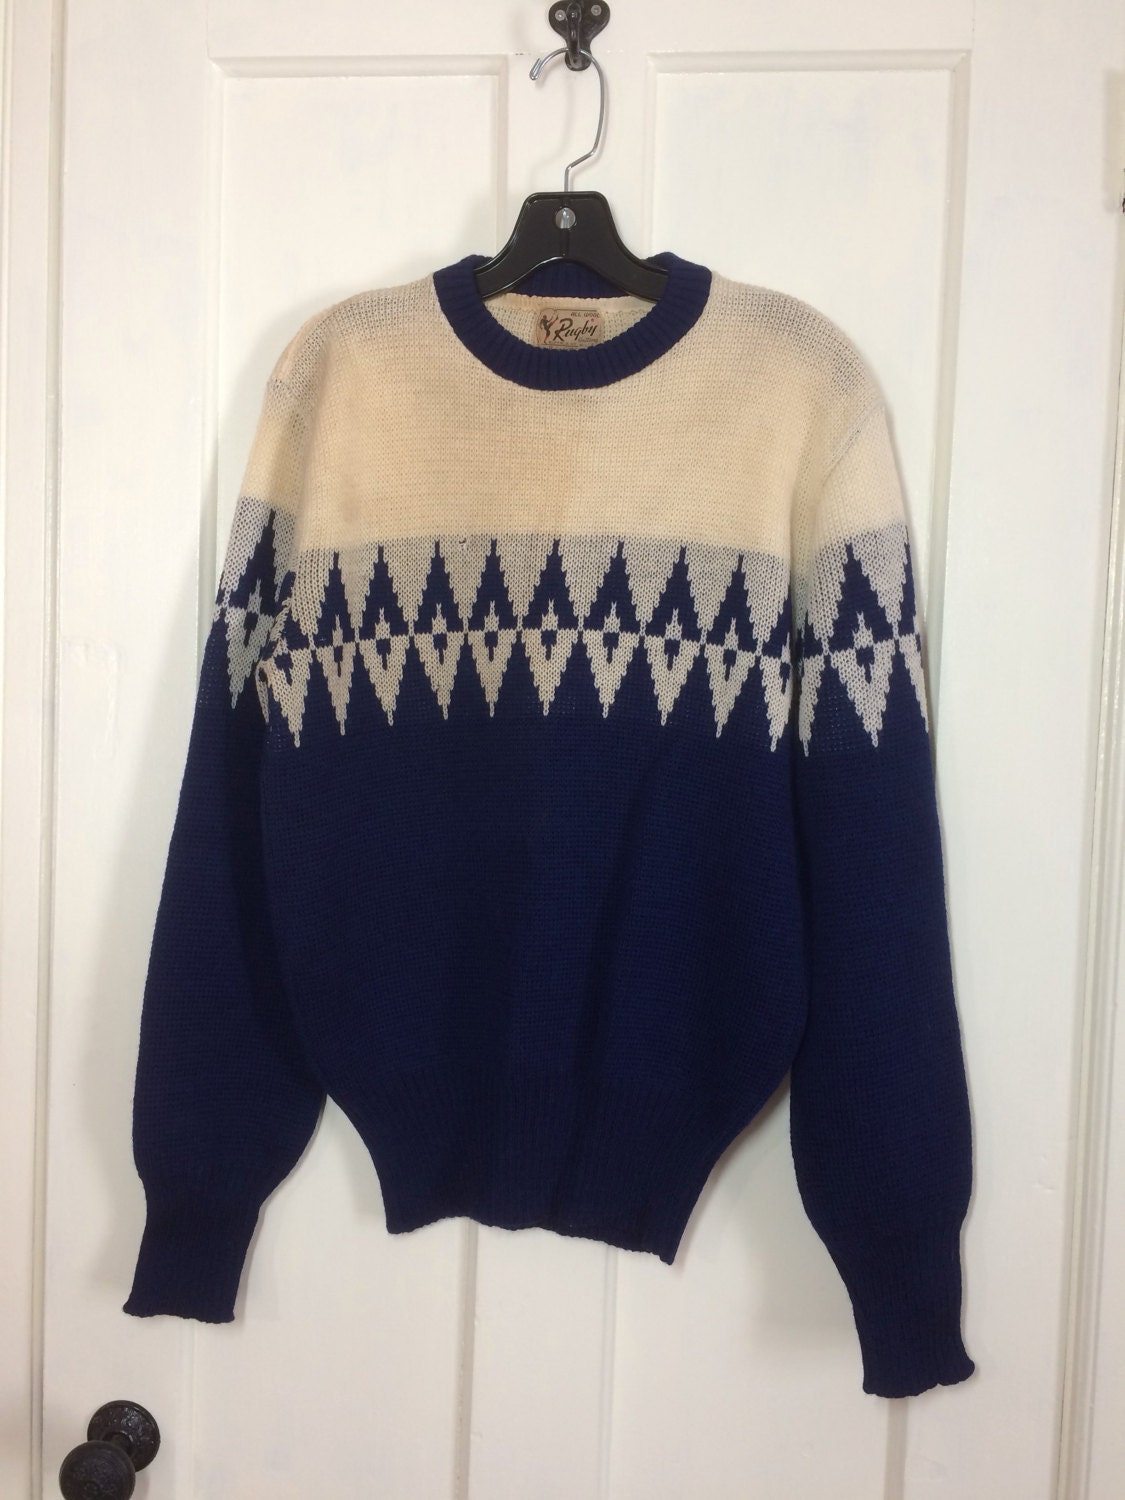 1940 S Rugby Knitting Mills All Wool Pullover Sweater Size Large Royal Blue Cream Off White Diamond Patterned Ski Sportswear